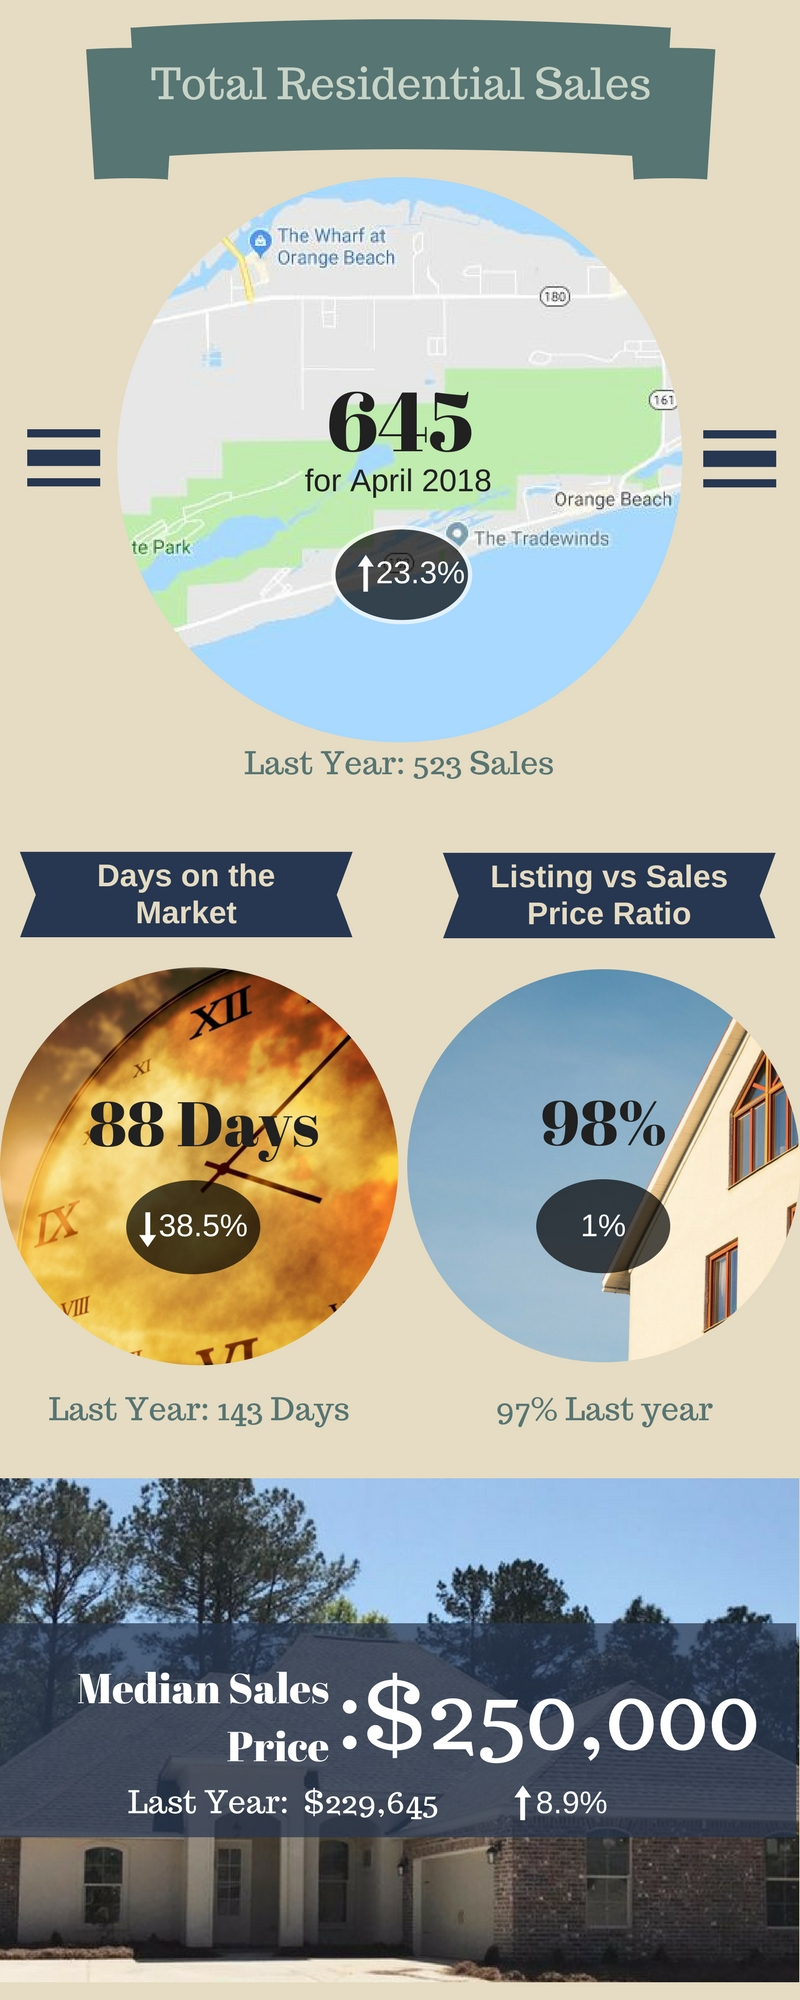 Baldwin County Real Estate Market Update Infographic - April 2018